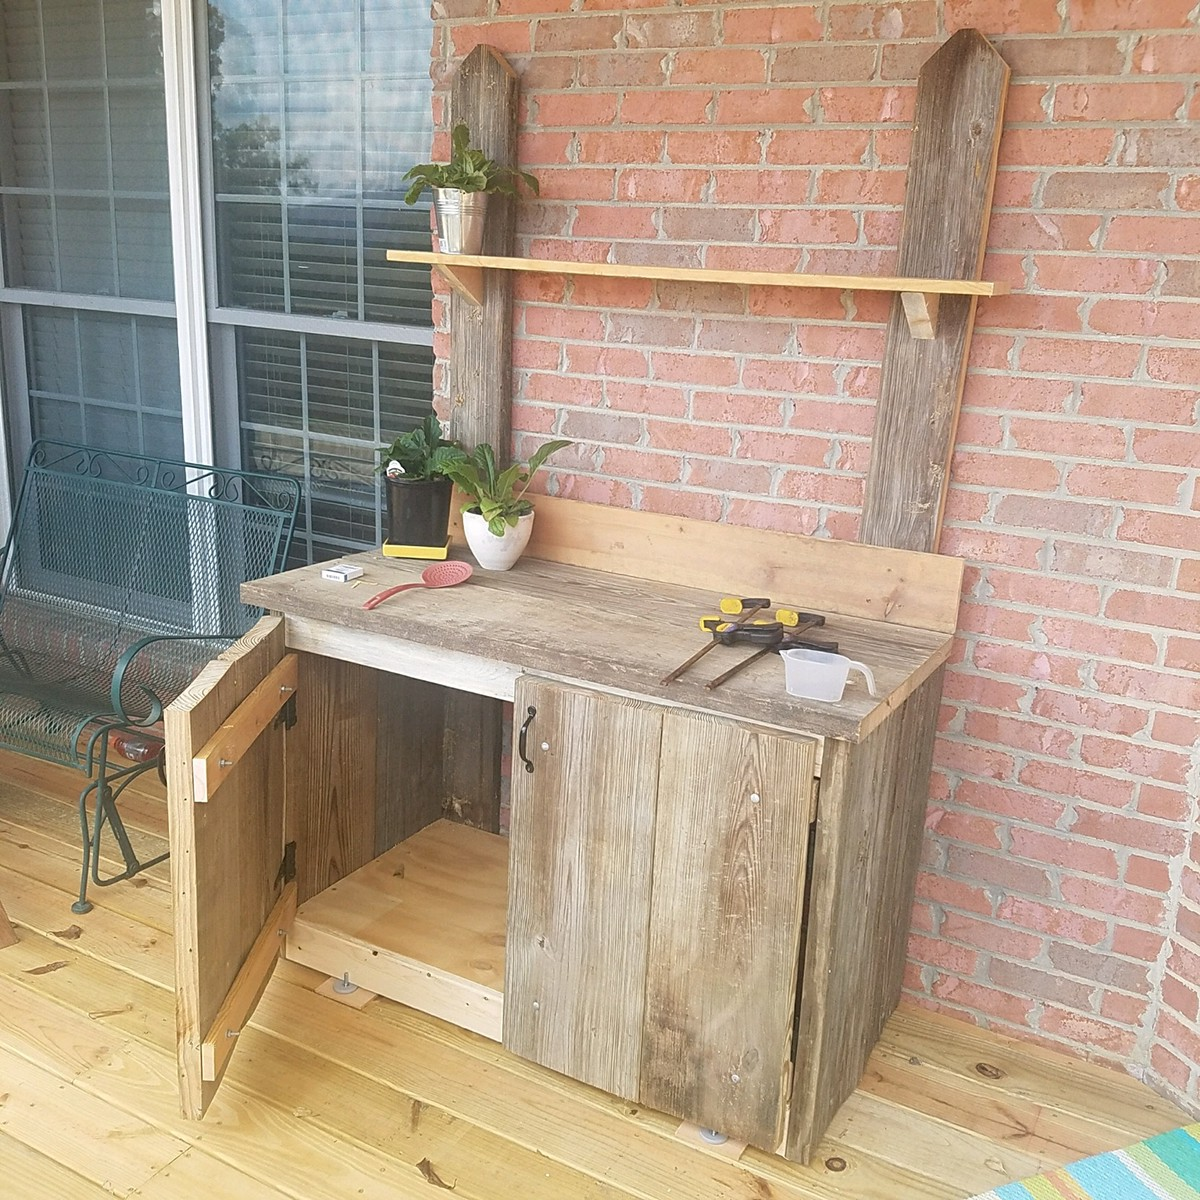 Custom Backyard Garden Tool Bench Constructed With Salvaged Planks